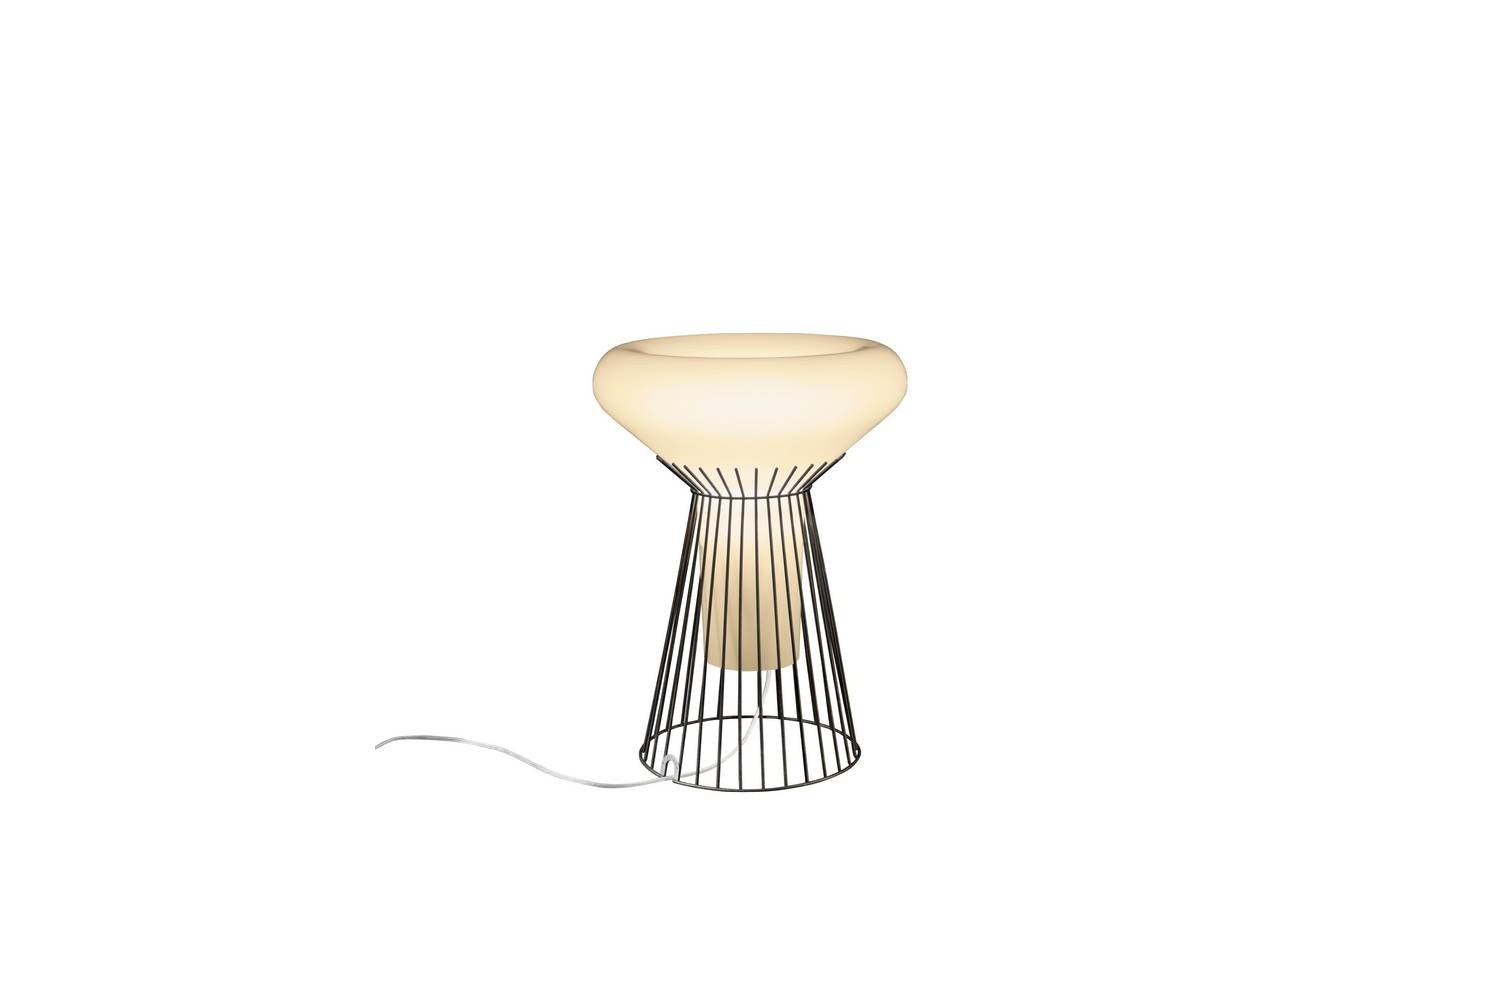 Metafisica Table Lamp by Successful Living from DIESEL for Foscarini